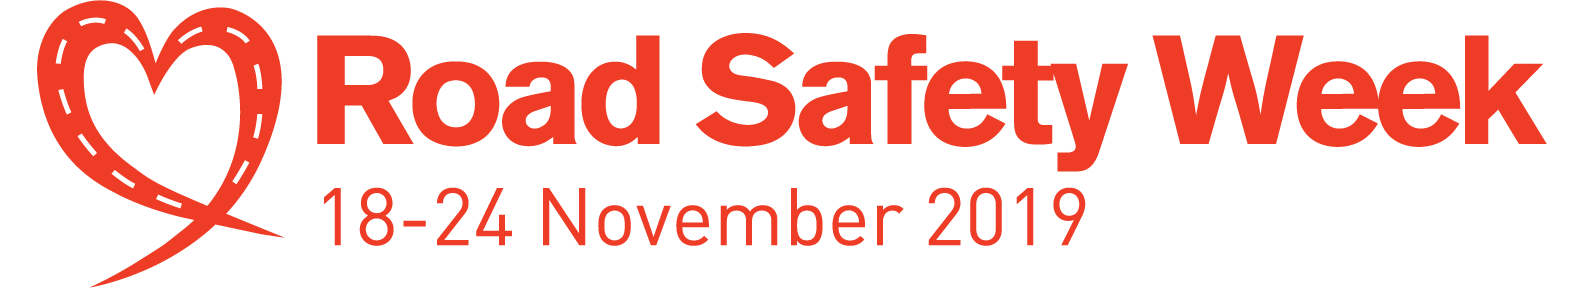 road safety week 2019